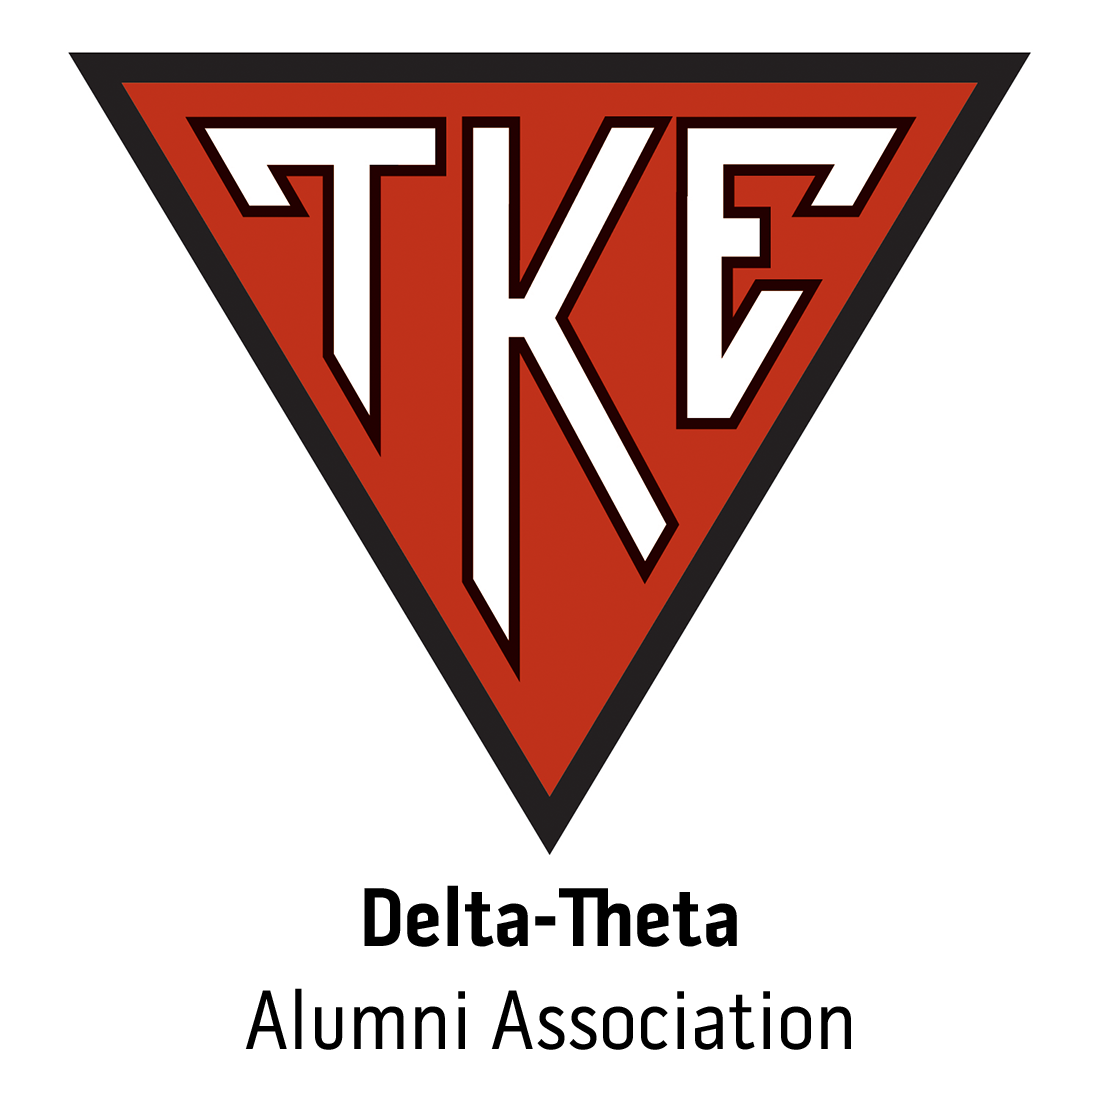 Delta-Theta Alumni Association at California State University, Long Beach